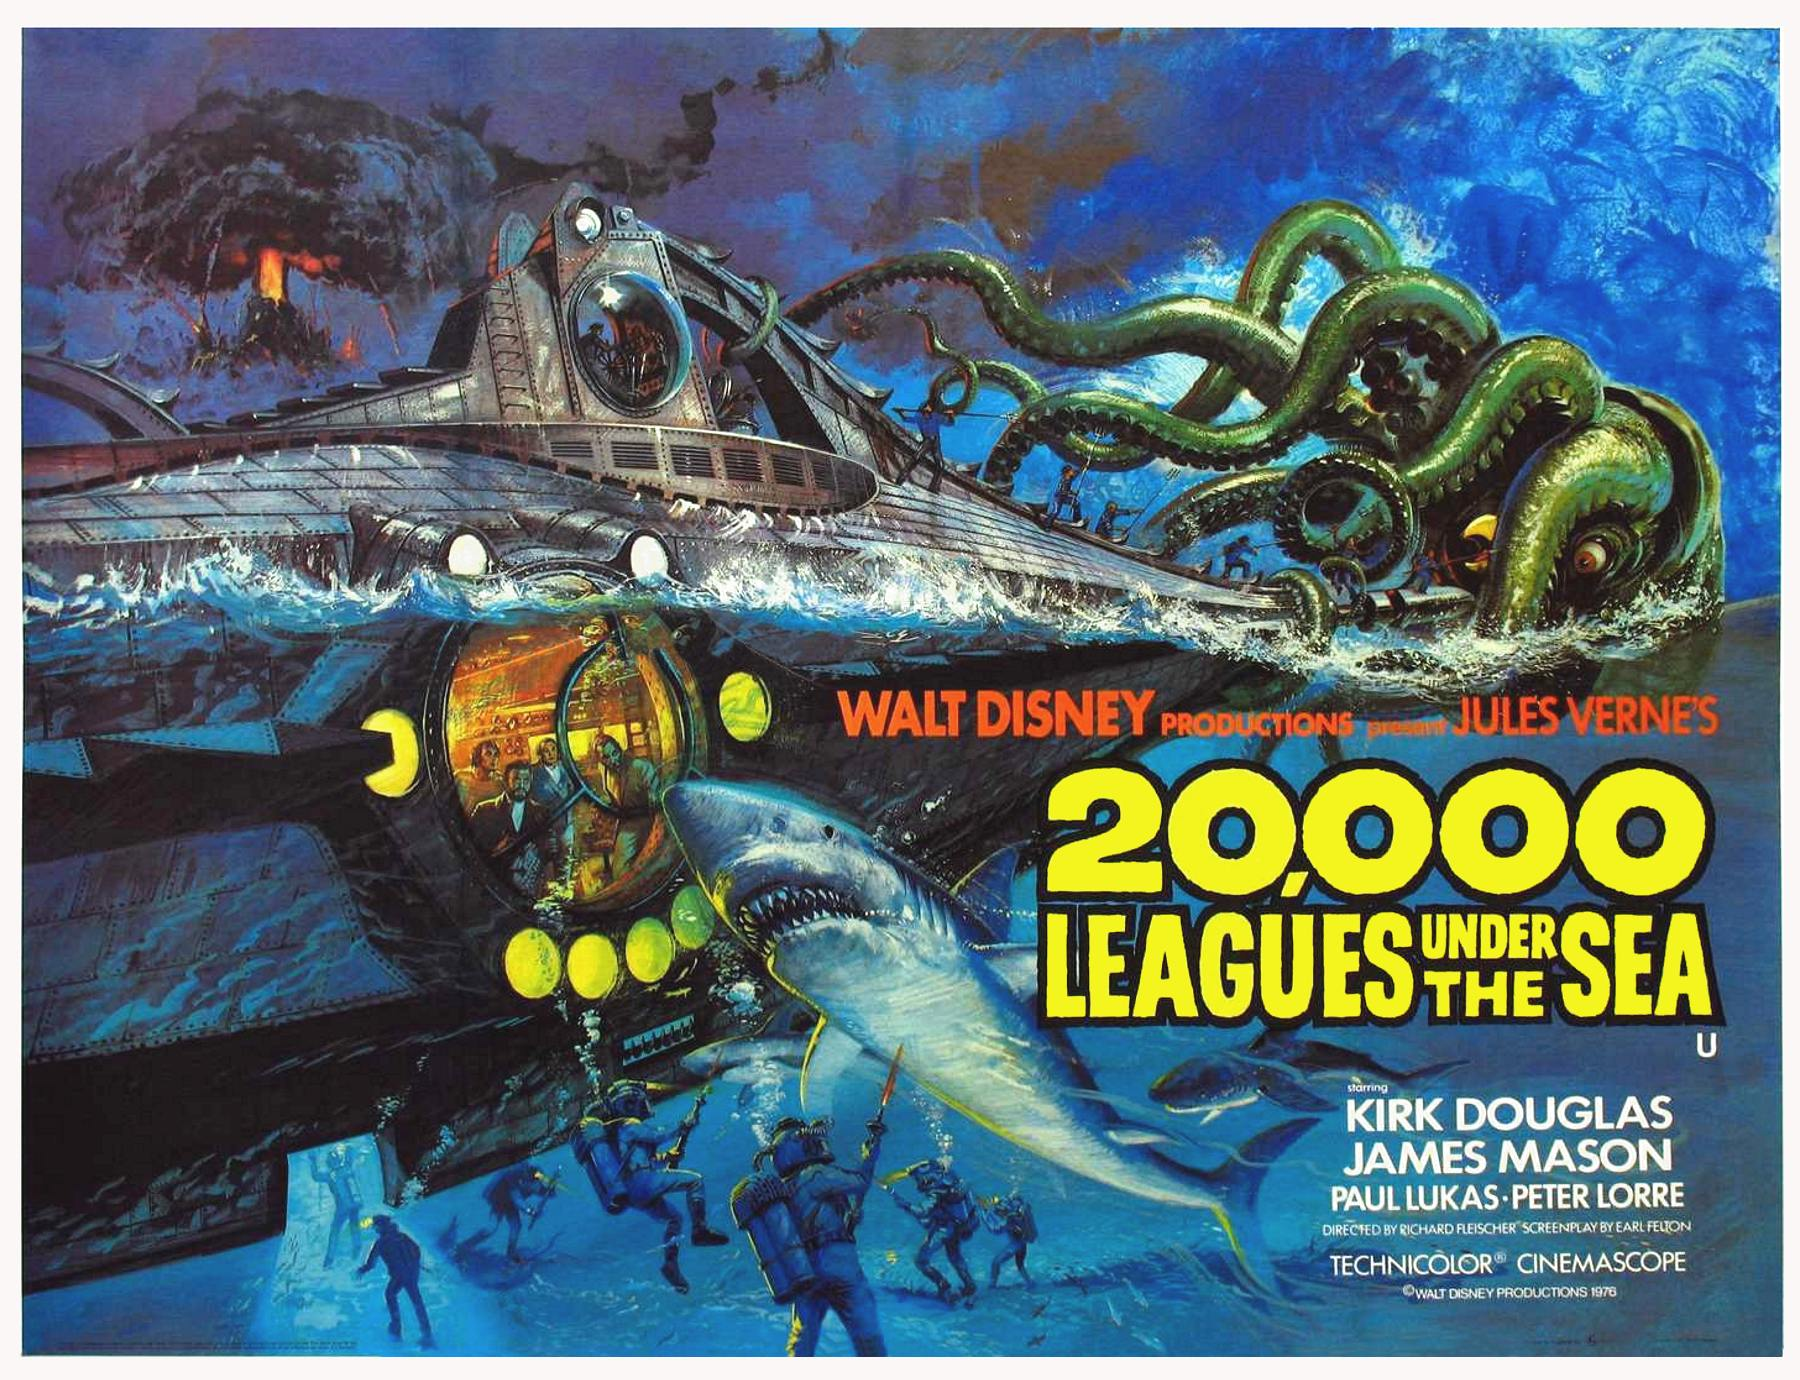 1800x1380 > 20,000 Leagues Under The Sea Wallpapers